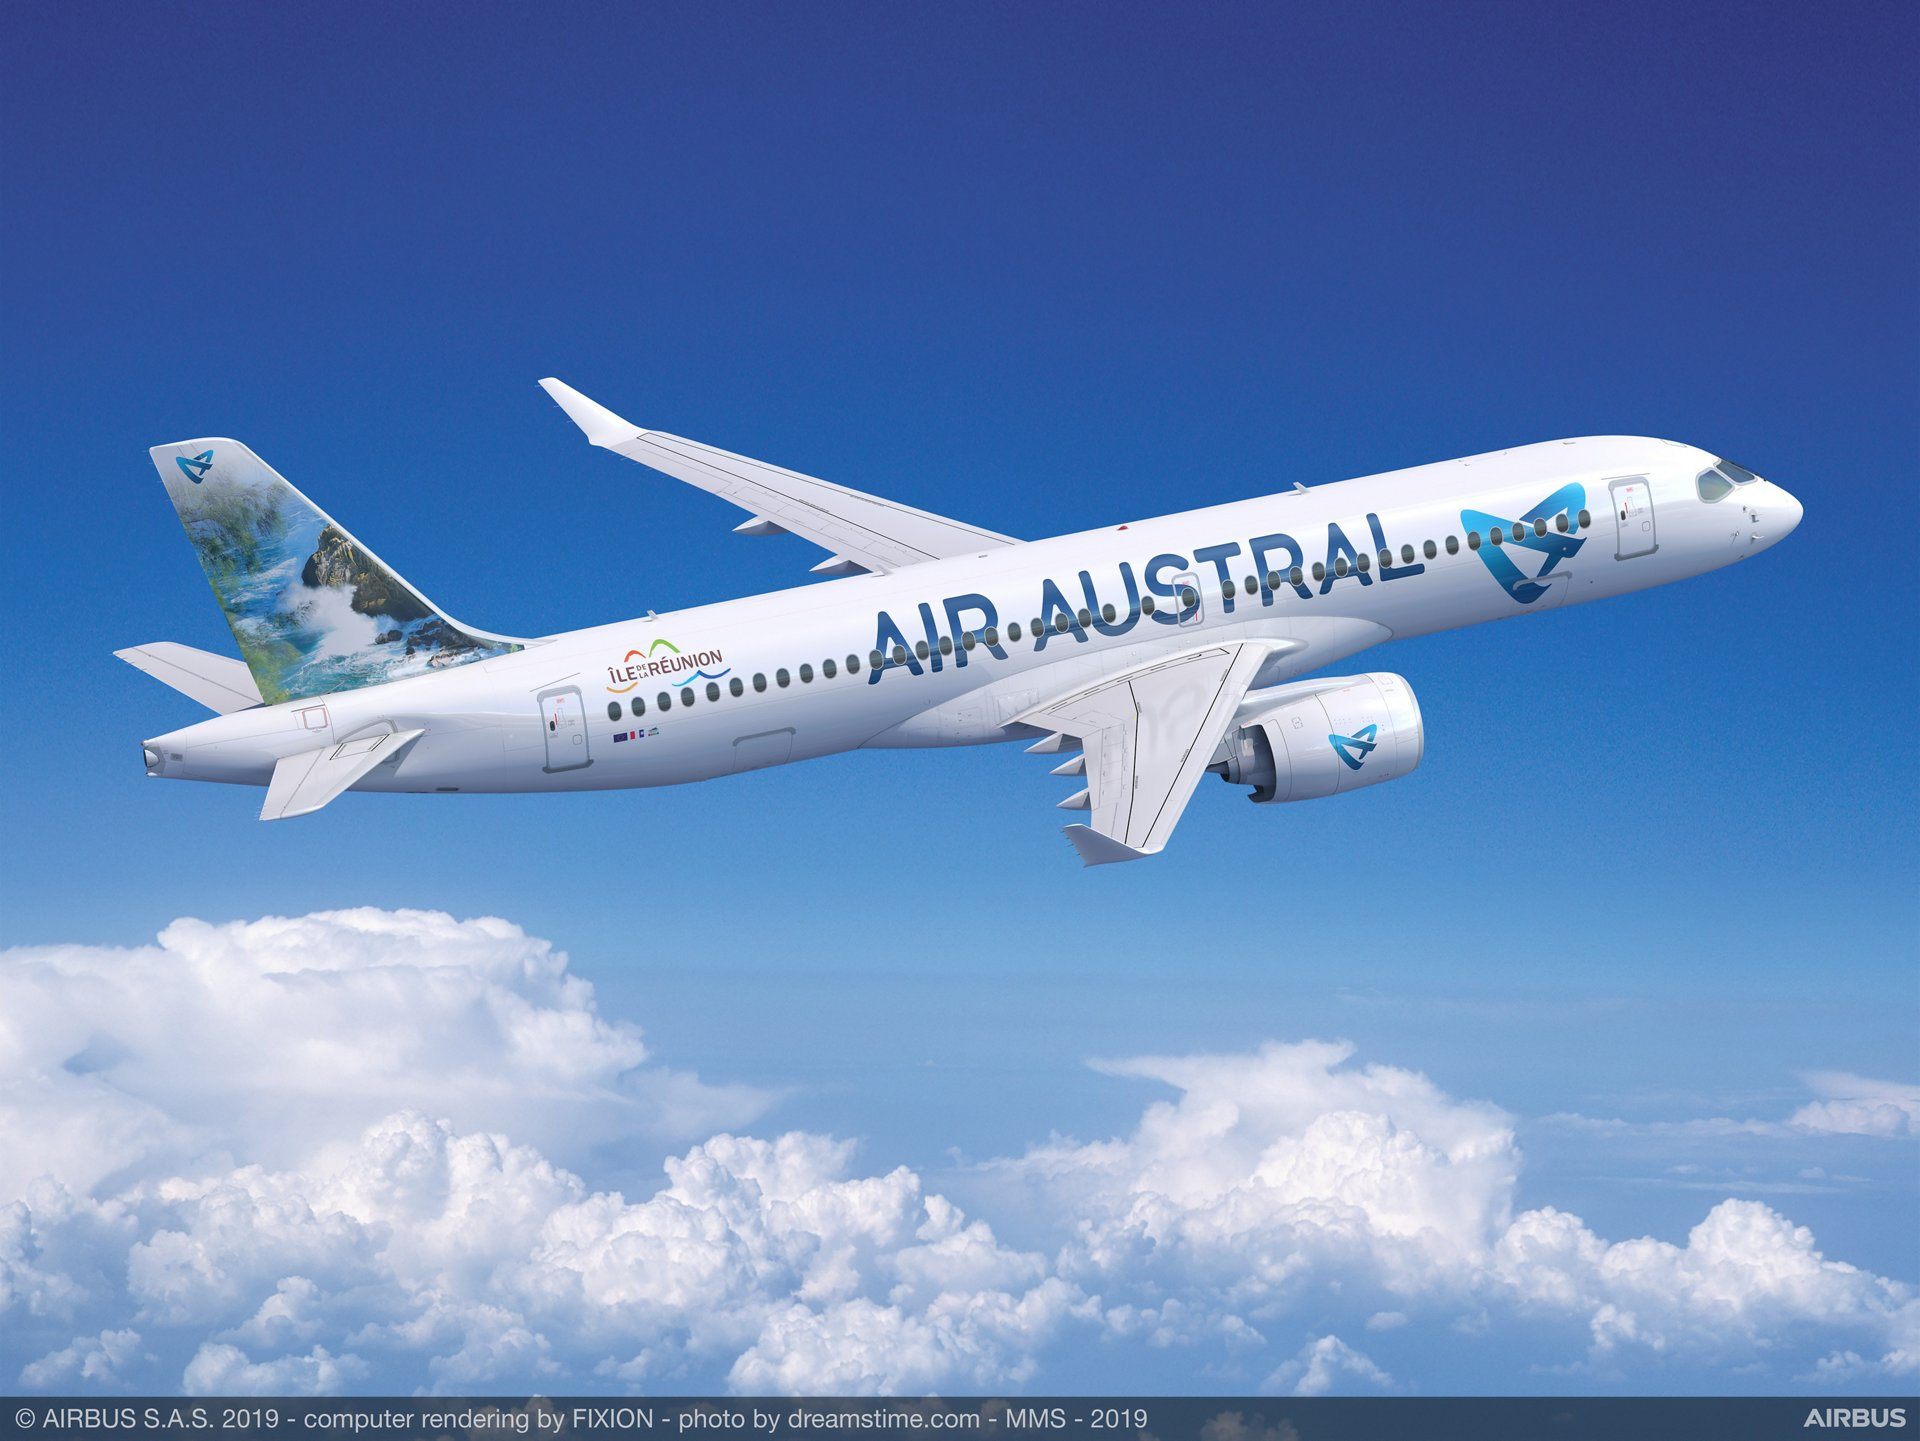 Air Austral became Airbus' first A220 customer based in the Indian Ocean region with a three-aircraft firm order announced in October 2019